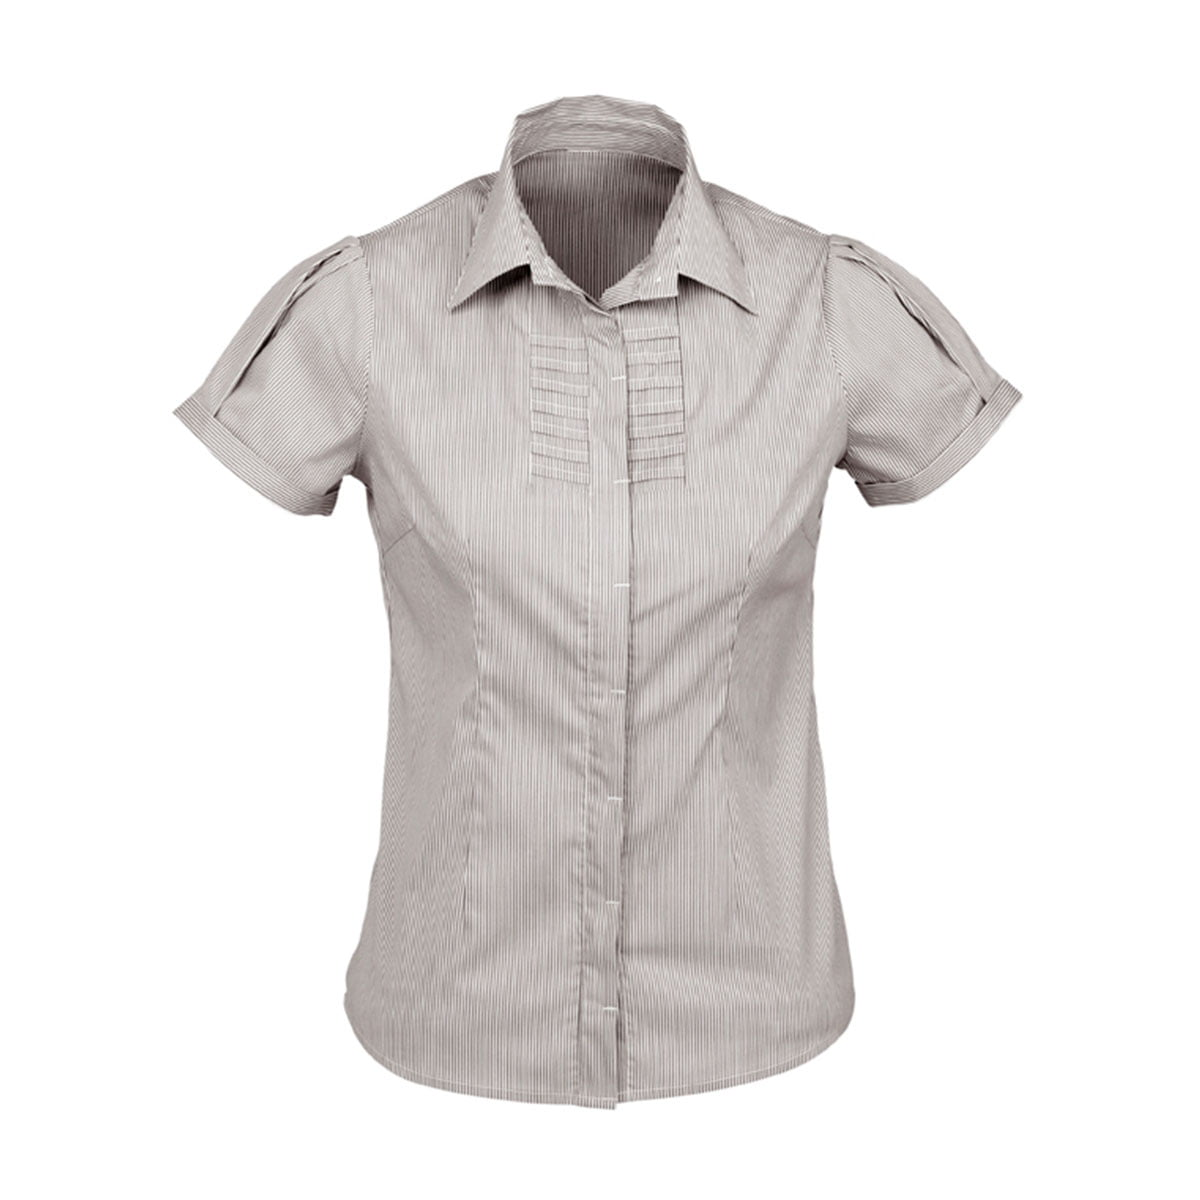 Ladies Berlin Short Sleeve Shirt-Graphite Stripe